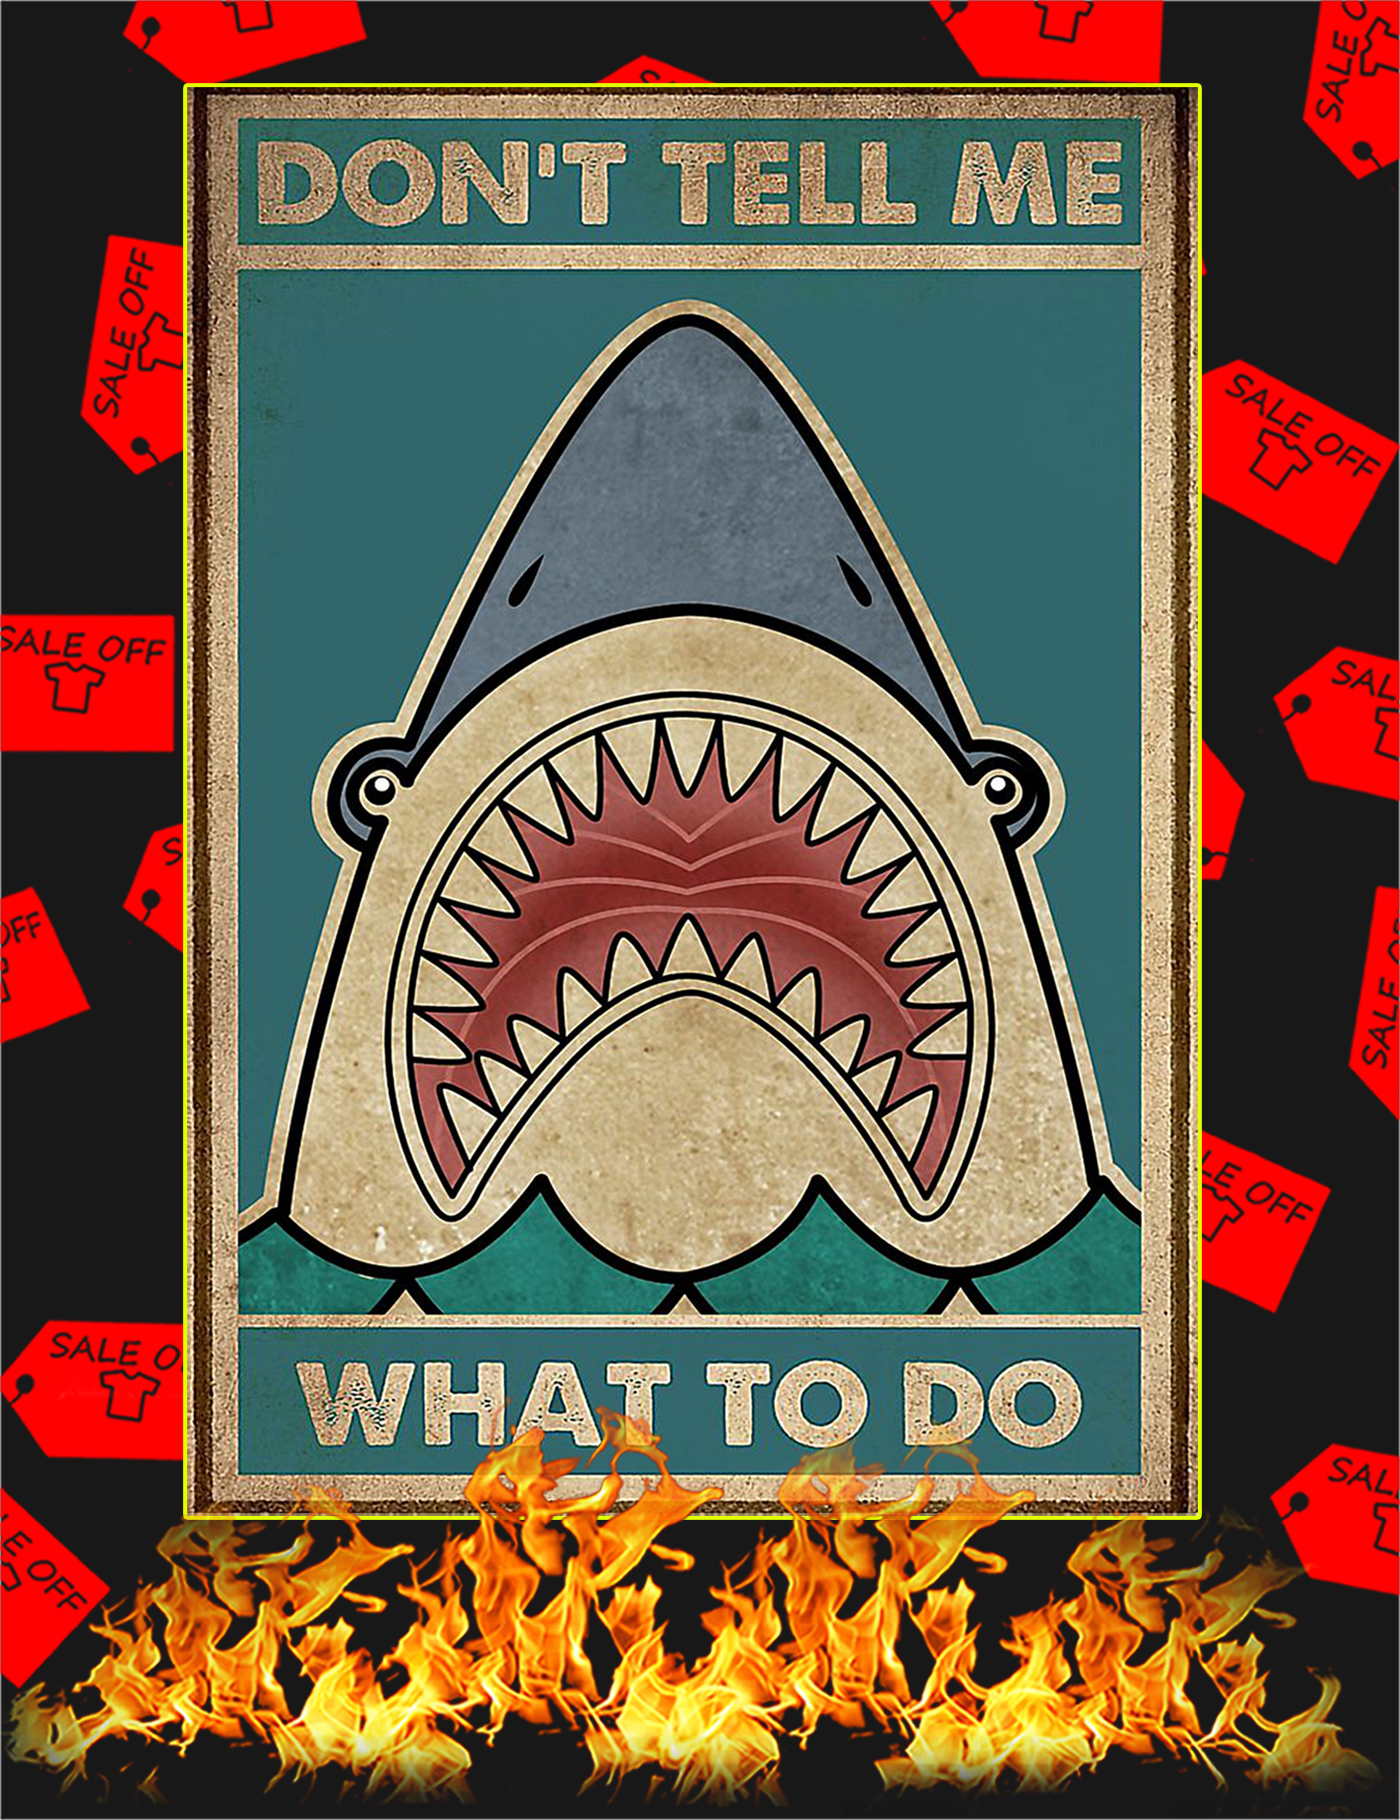 Shark Don't tell me what to do poster - A1